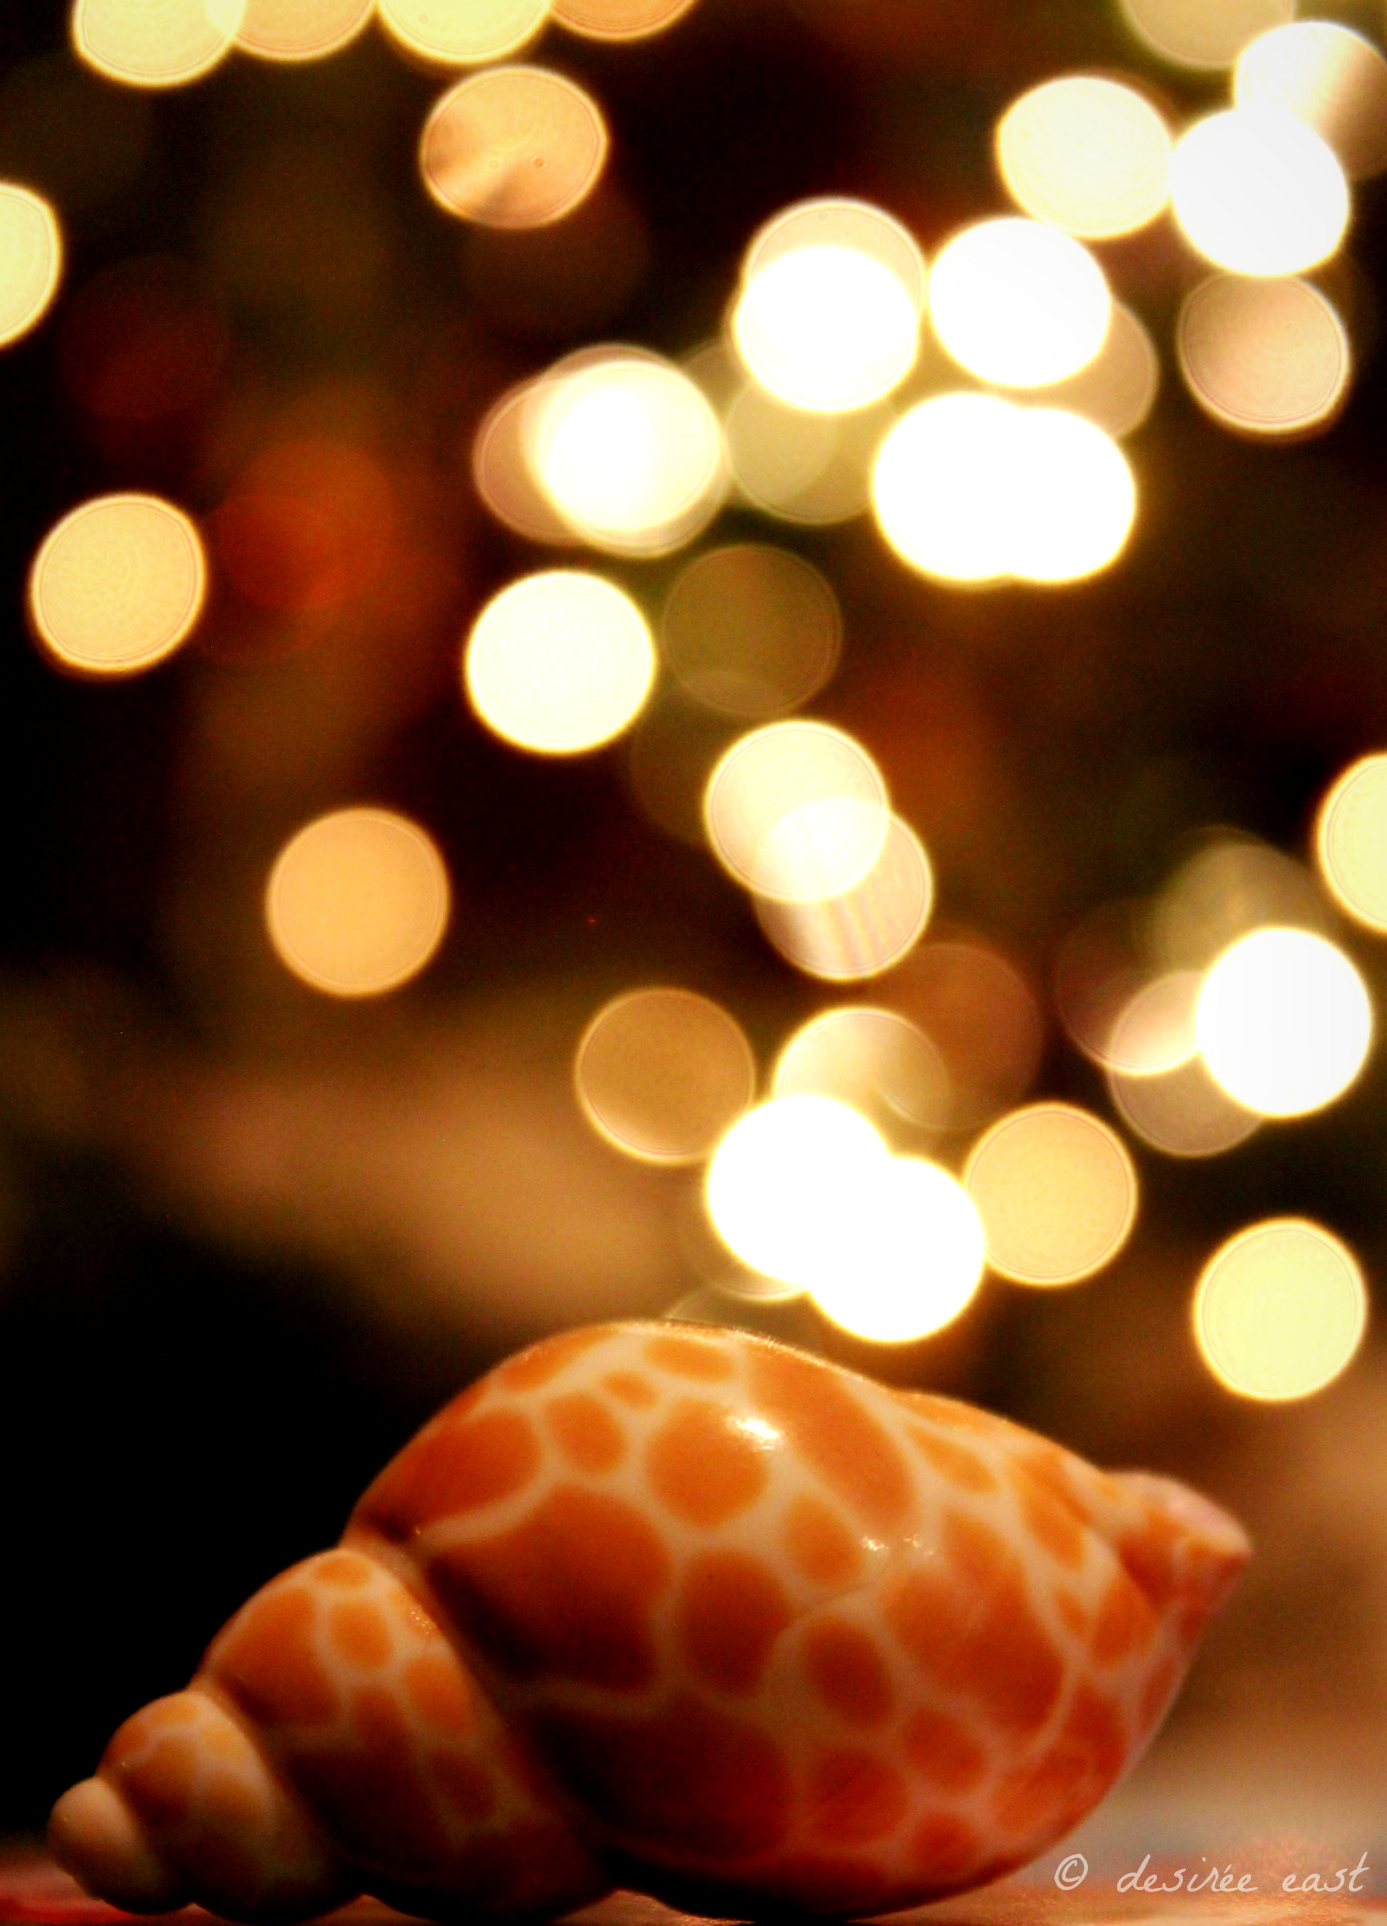 bokeh photography tips by desire east